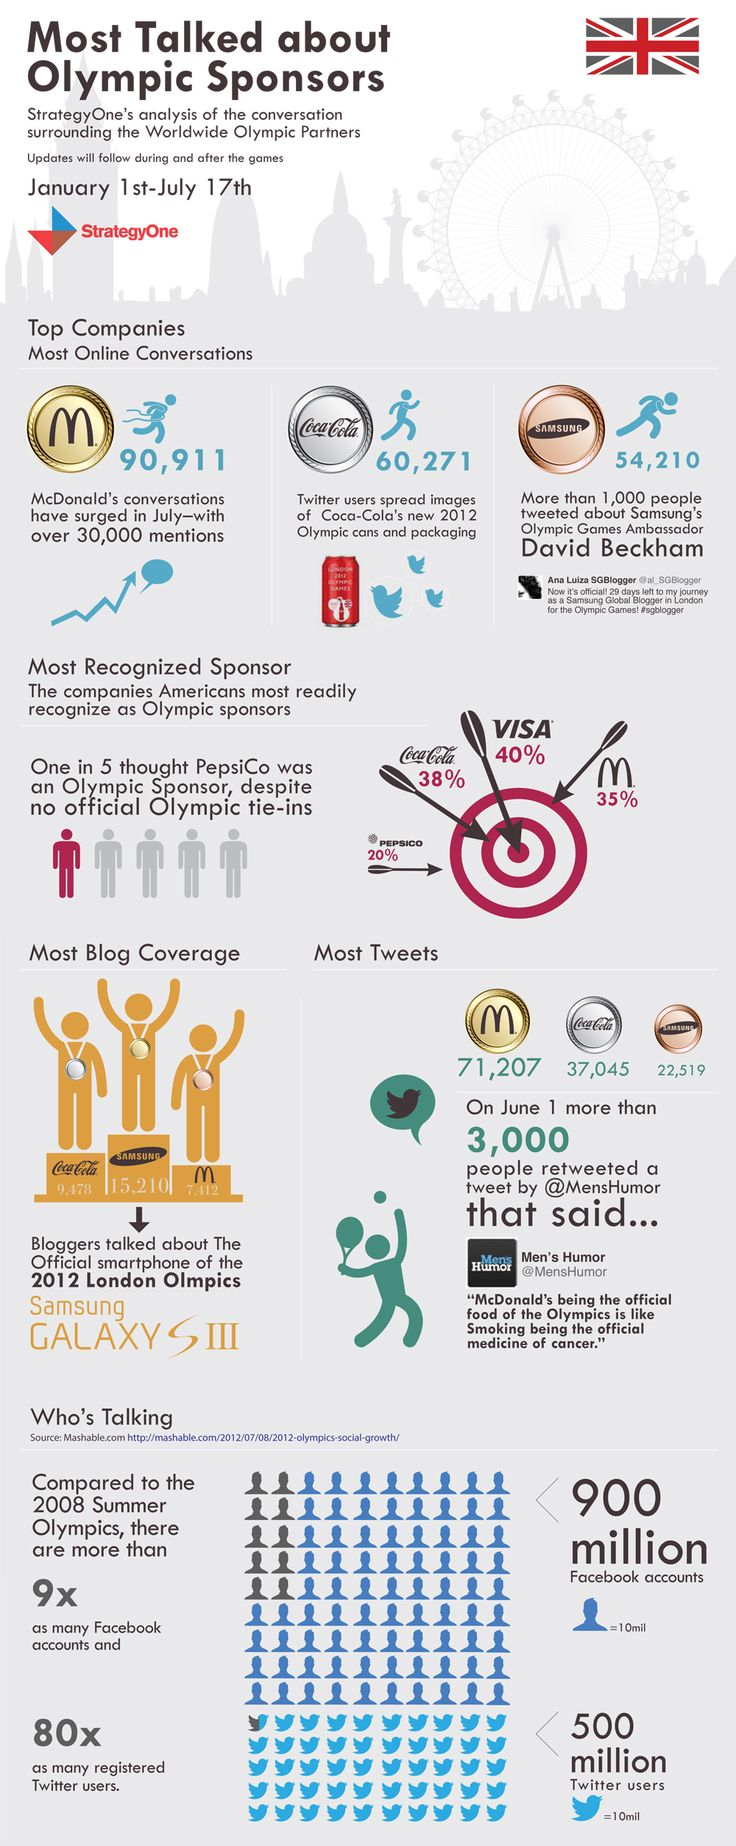 Most talked about Olympic Sponsors #Olympics